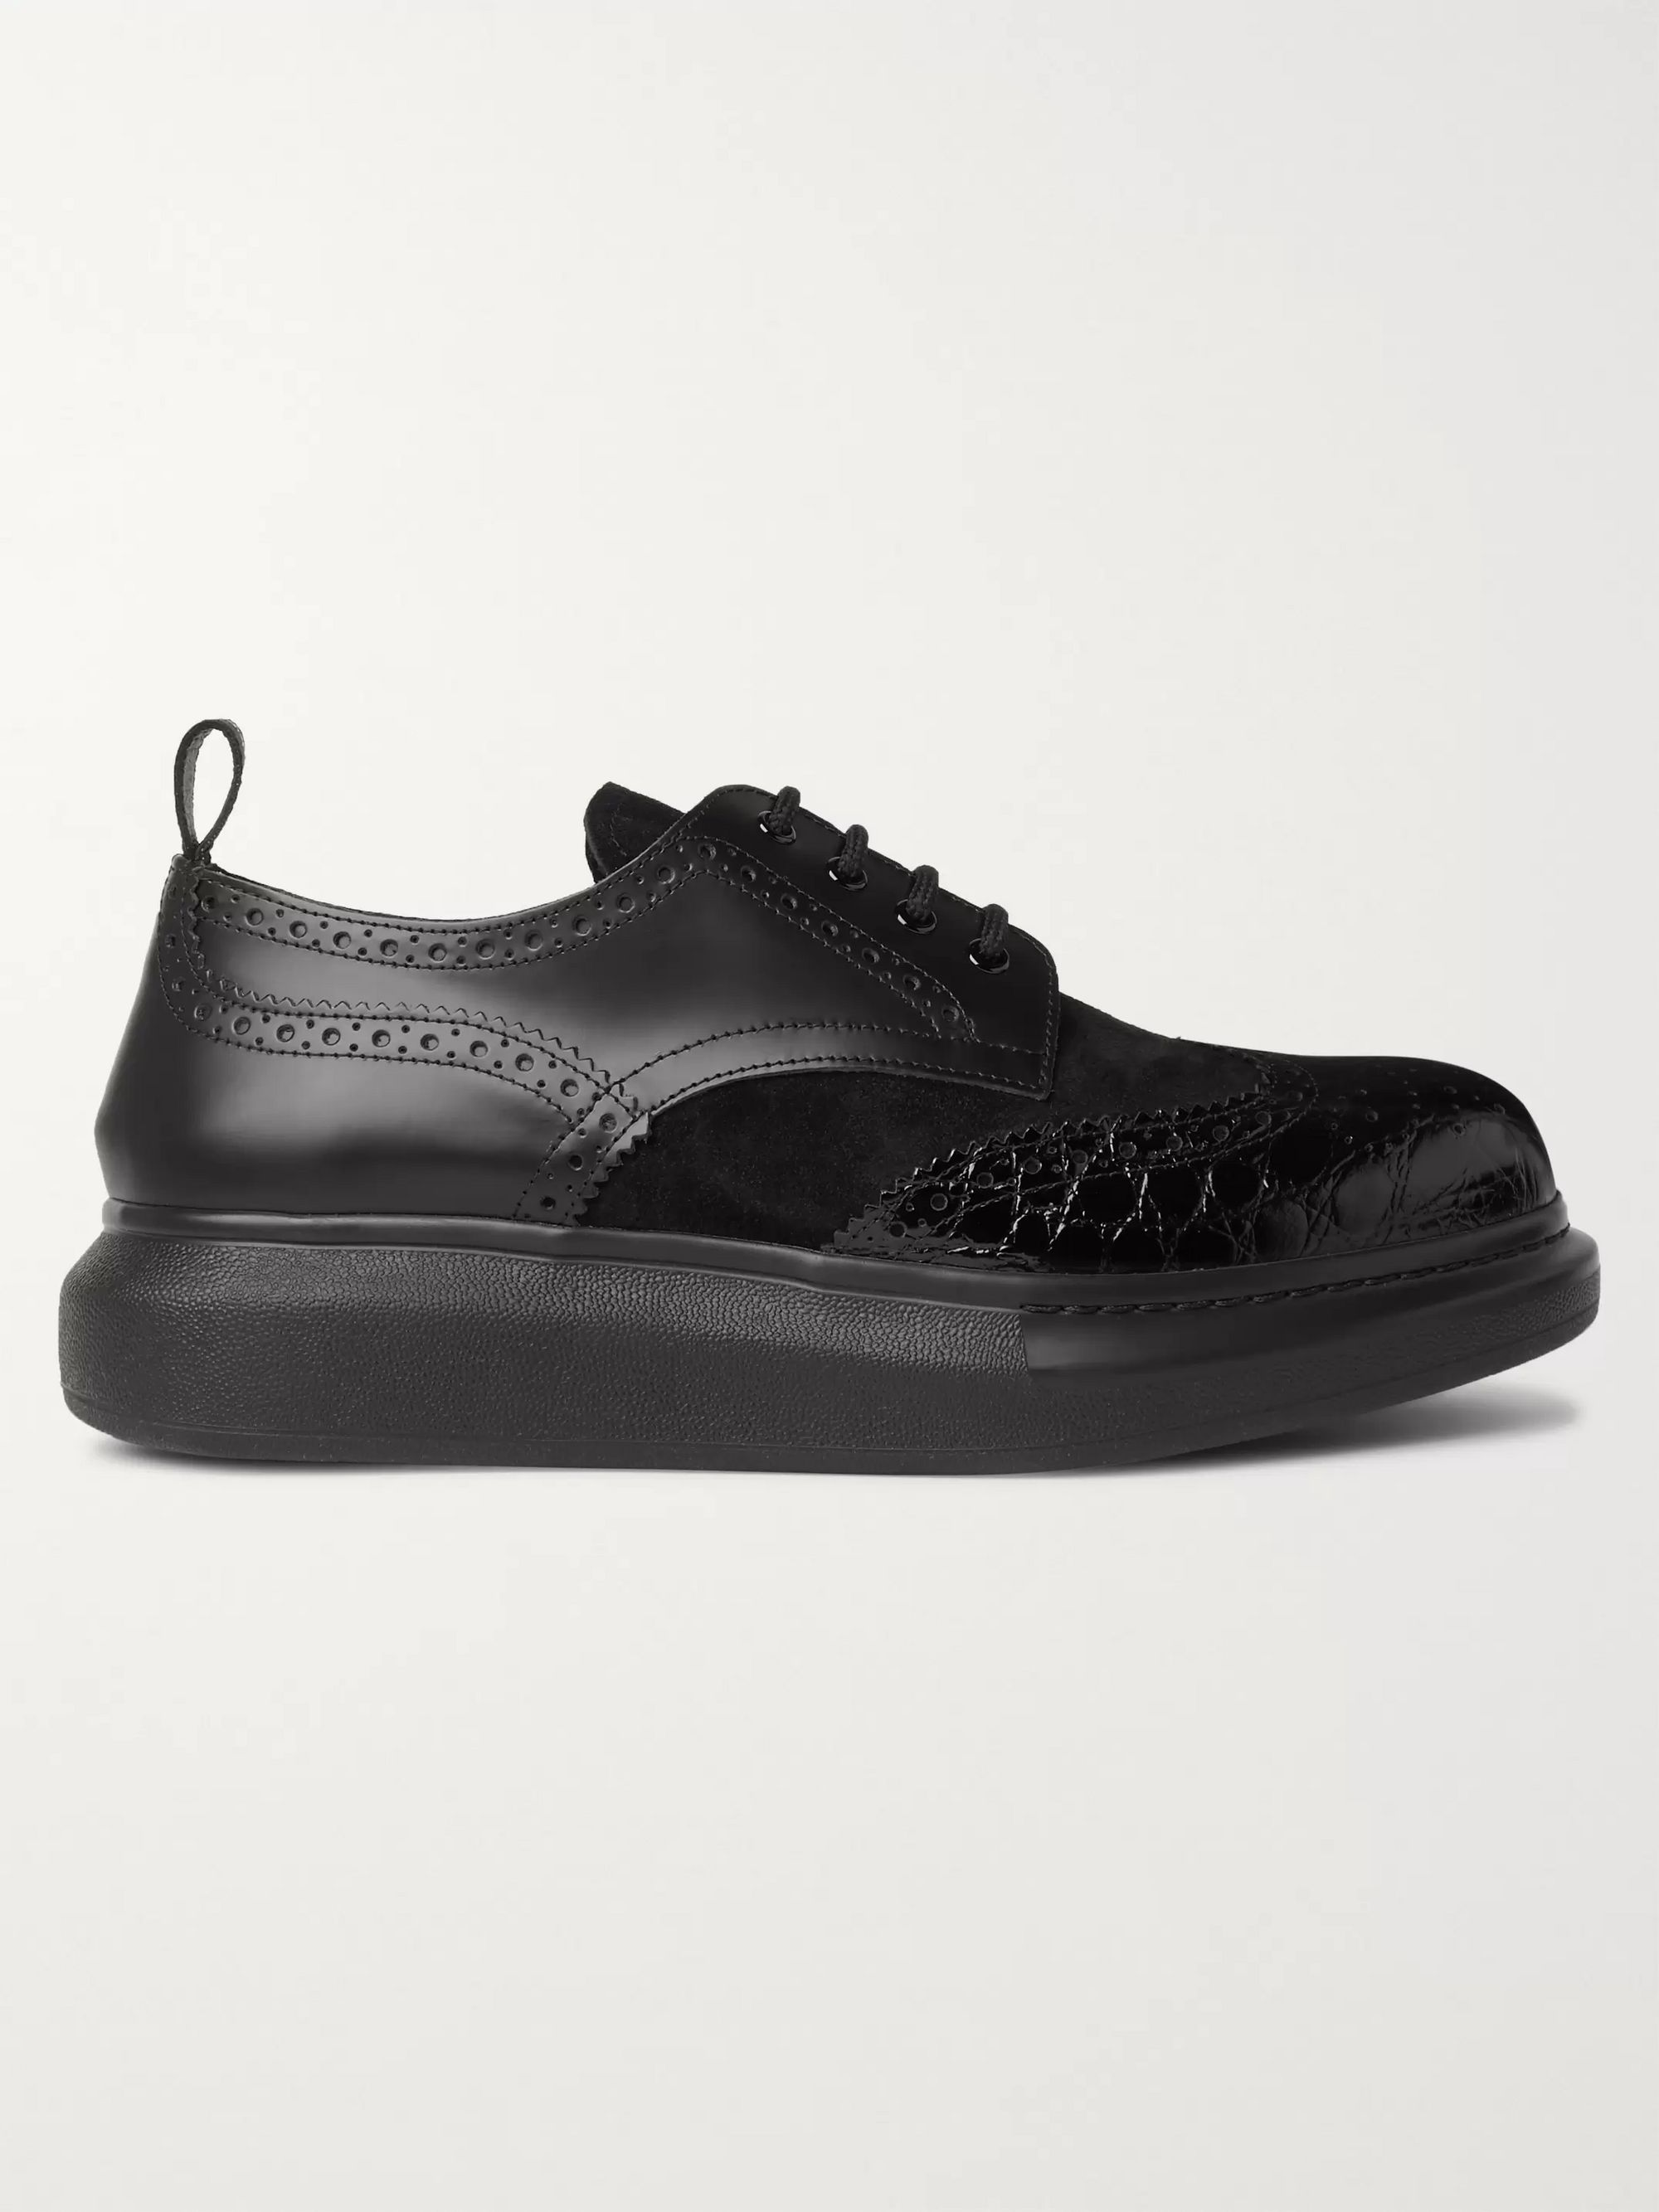 Alexander McQueen Exaggerated-Sole Suede and Croc-Effect Leather Brogues